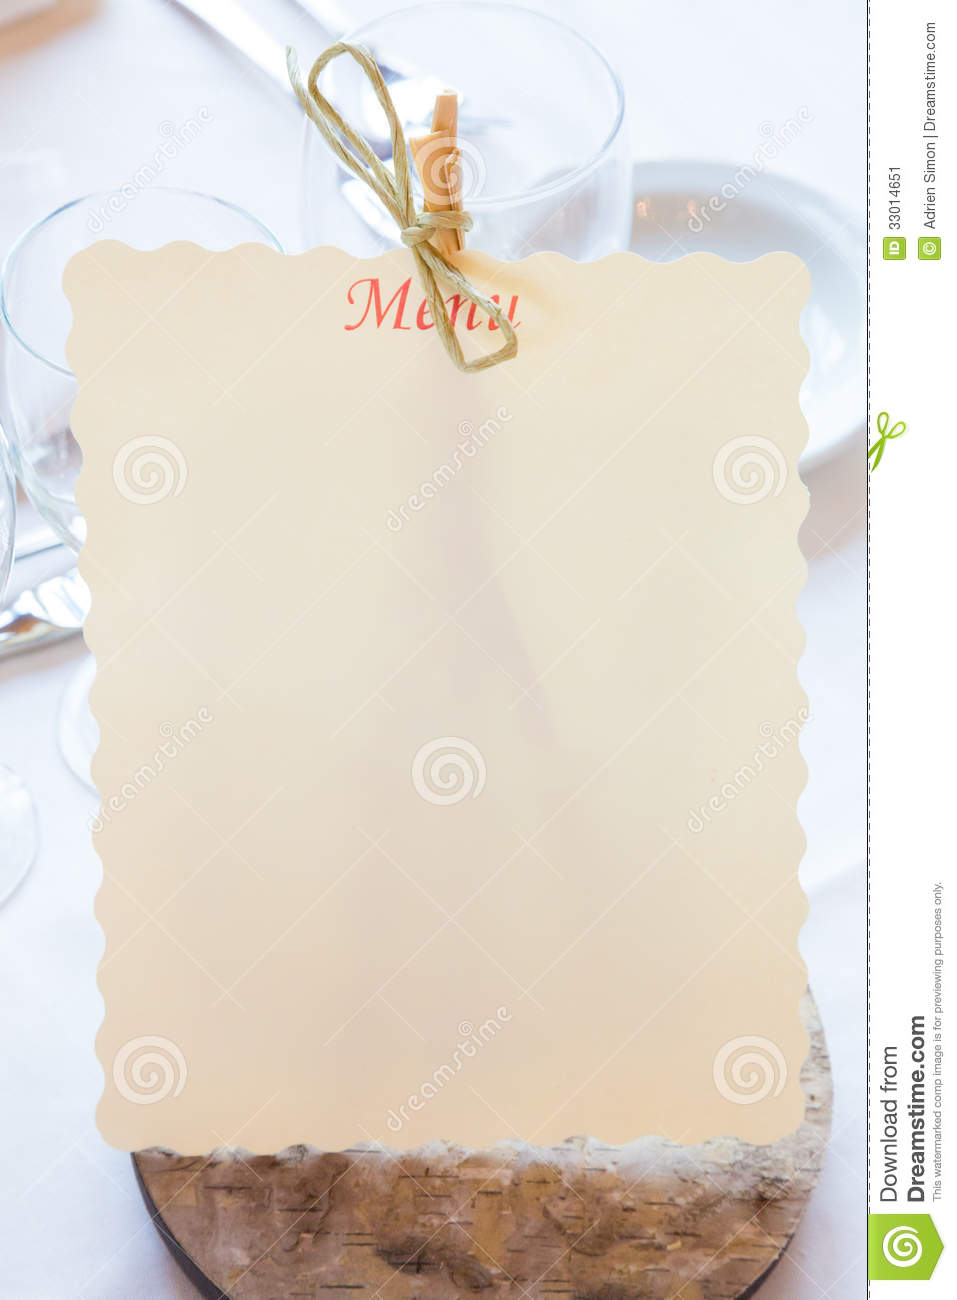 Empty Restaurant Menu Stock Image  Image 33014651